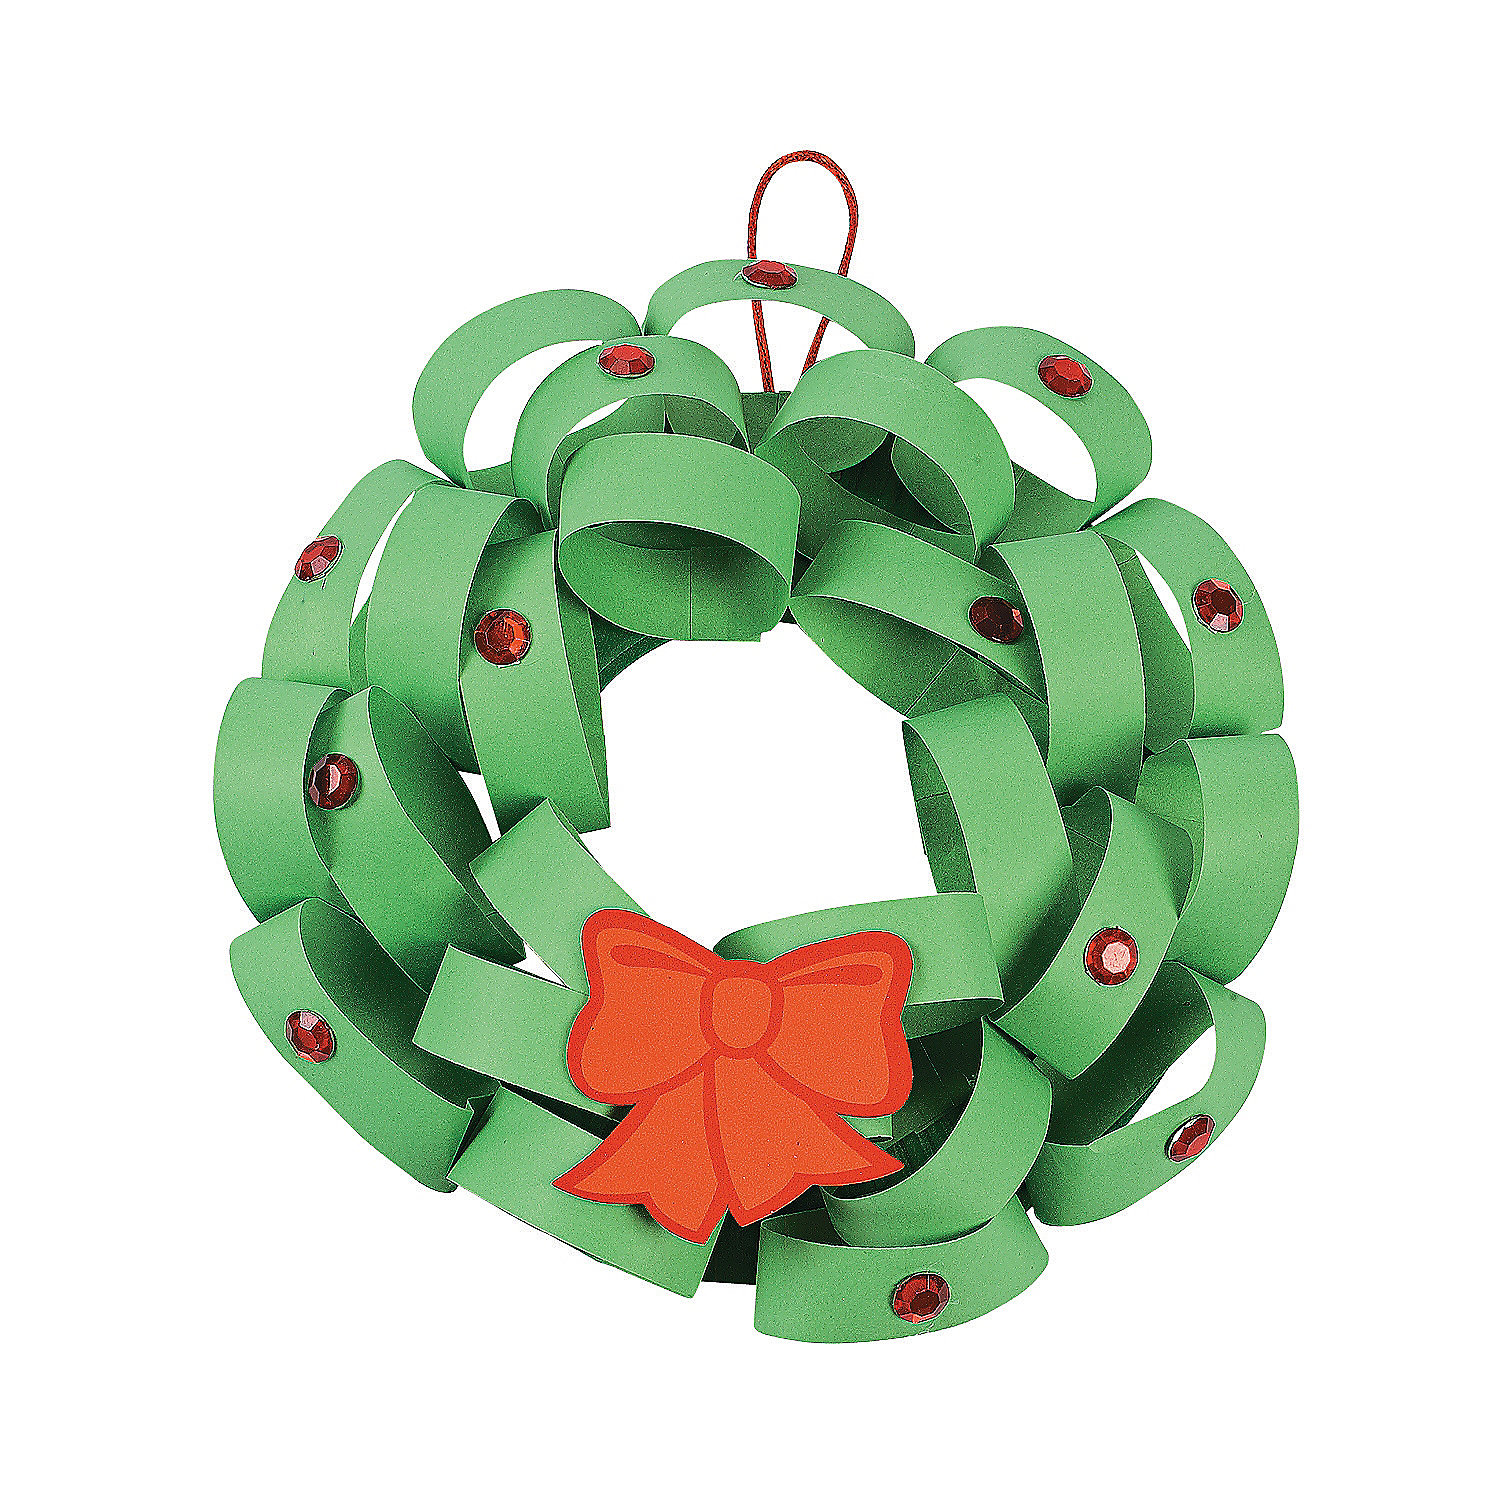 Loopy christmas wreath craft kit oriental trading for Christmas crafts made out of paper plates